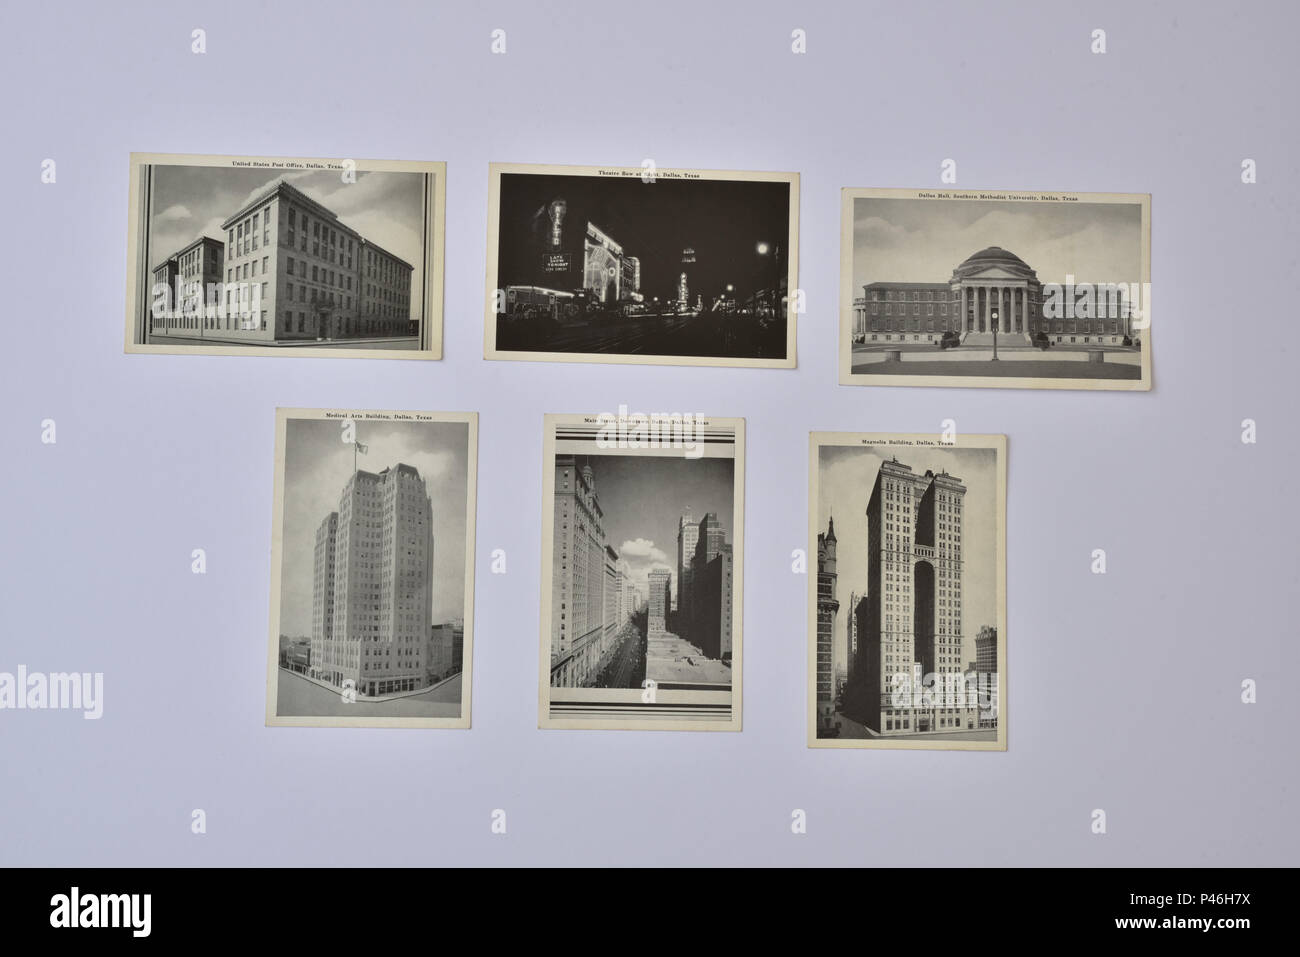 Photograph of six 1930's/1940's American postcards depicting various scenes in Dallas, Texas, in black and white photographs. - Stock Image